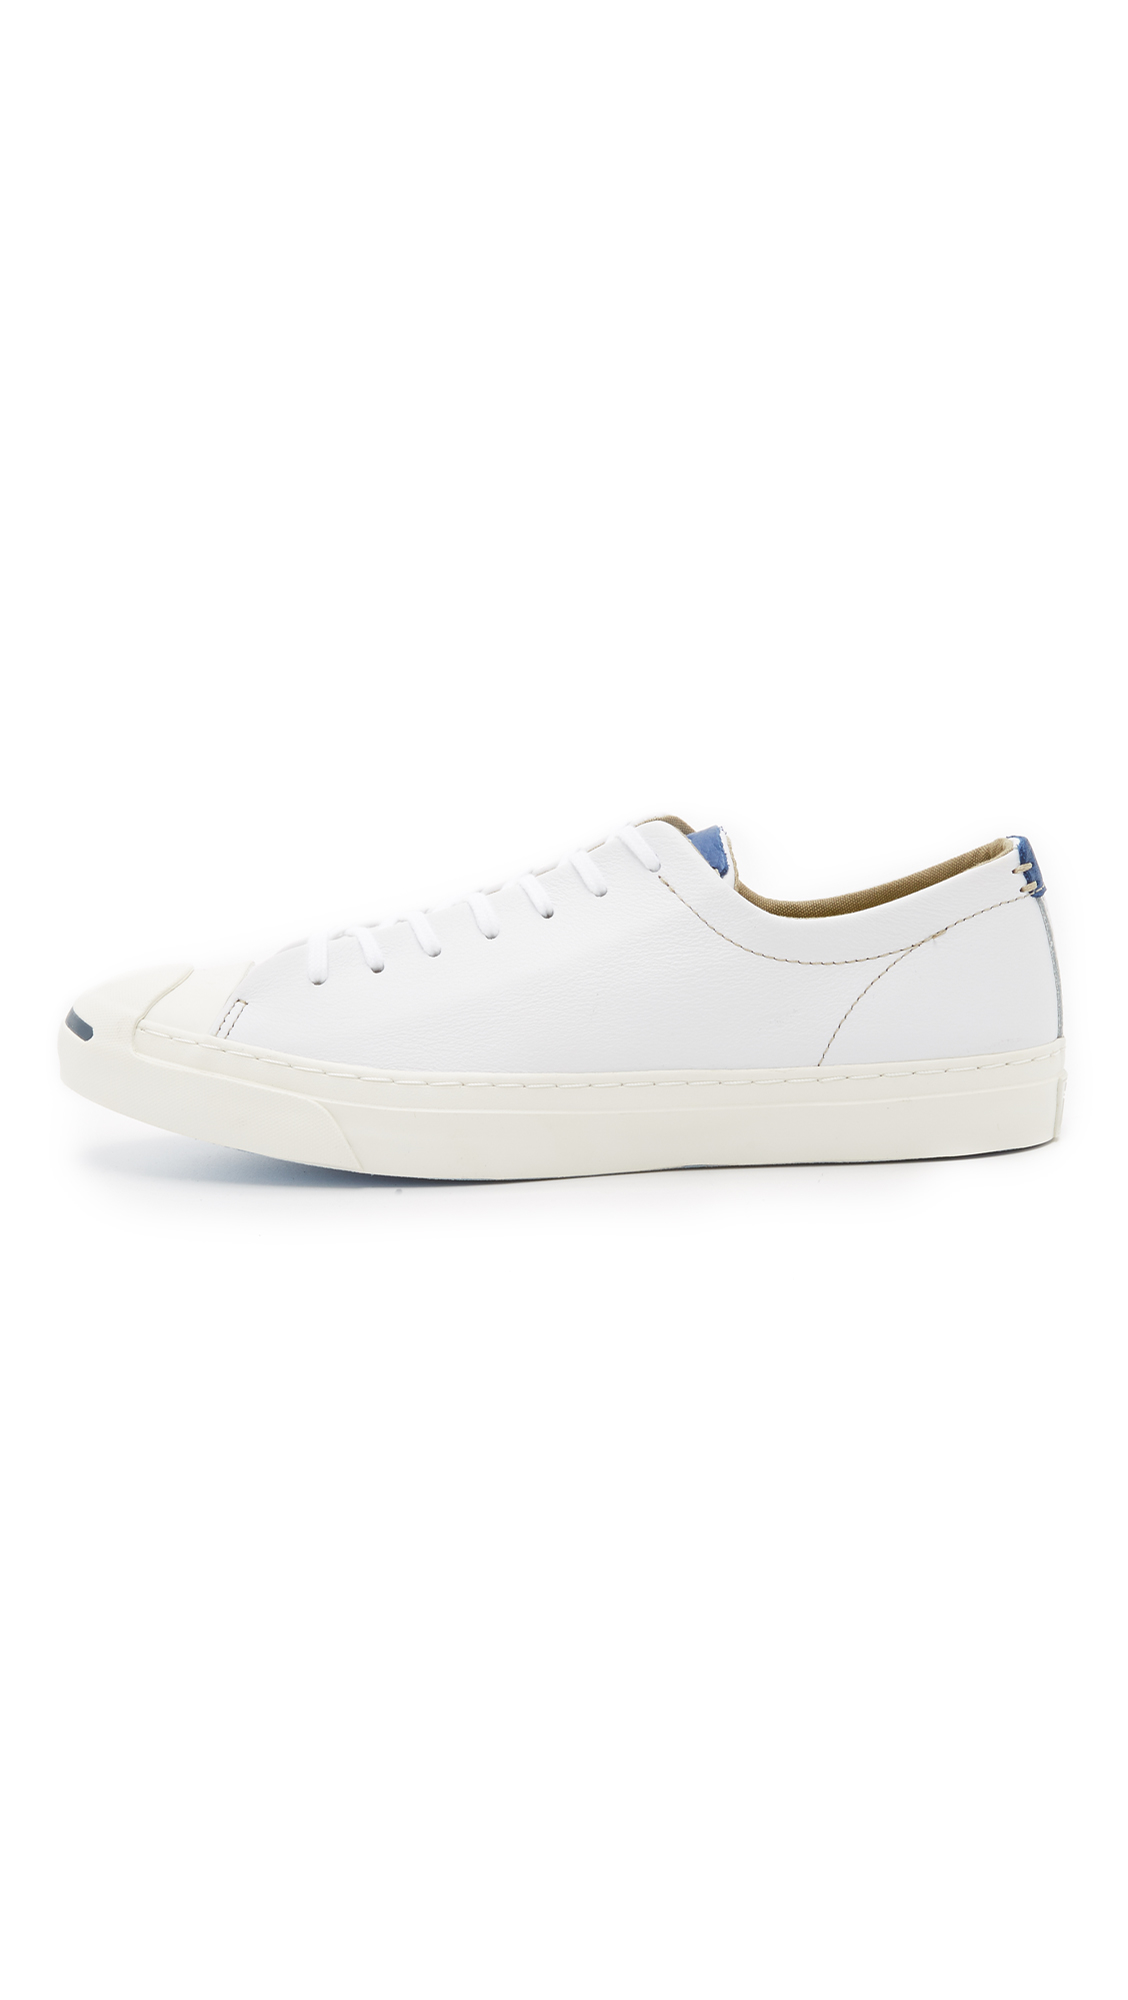 379f5d1fab4f Lyst - Converse Jack Purcell Jack Tumbled Leather Sneakers in Blue ...